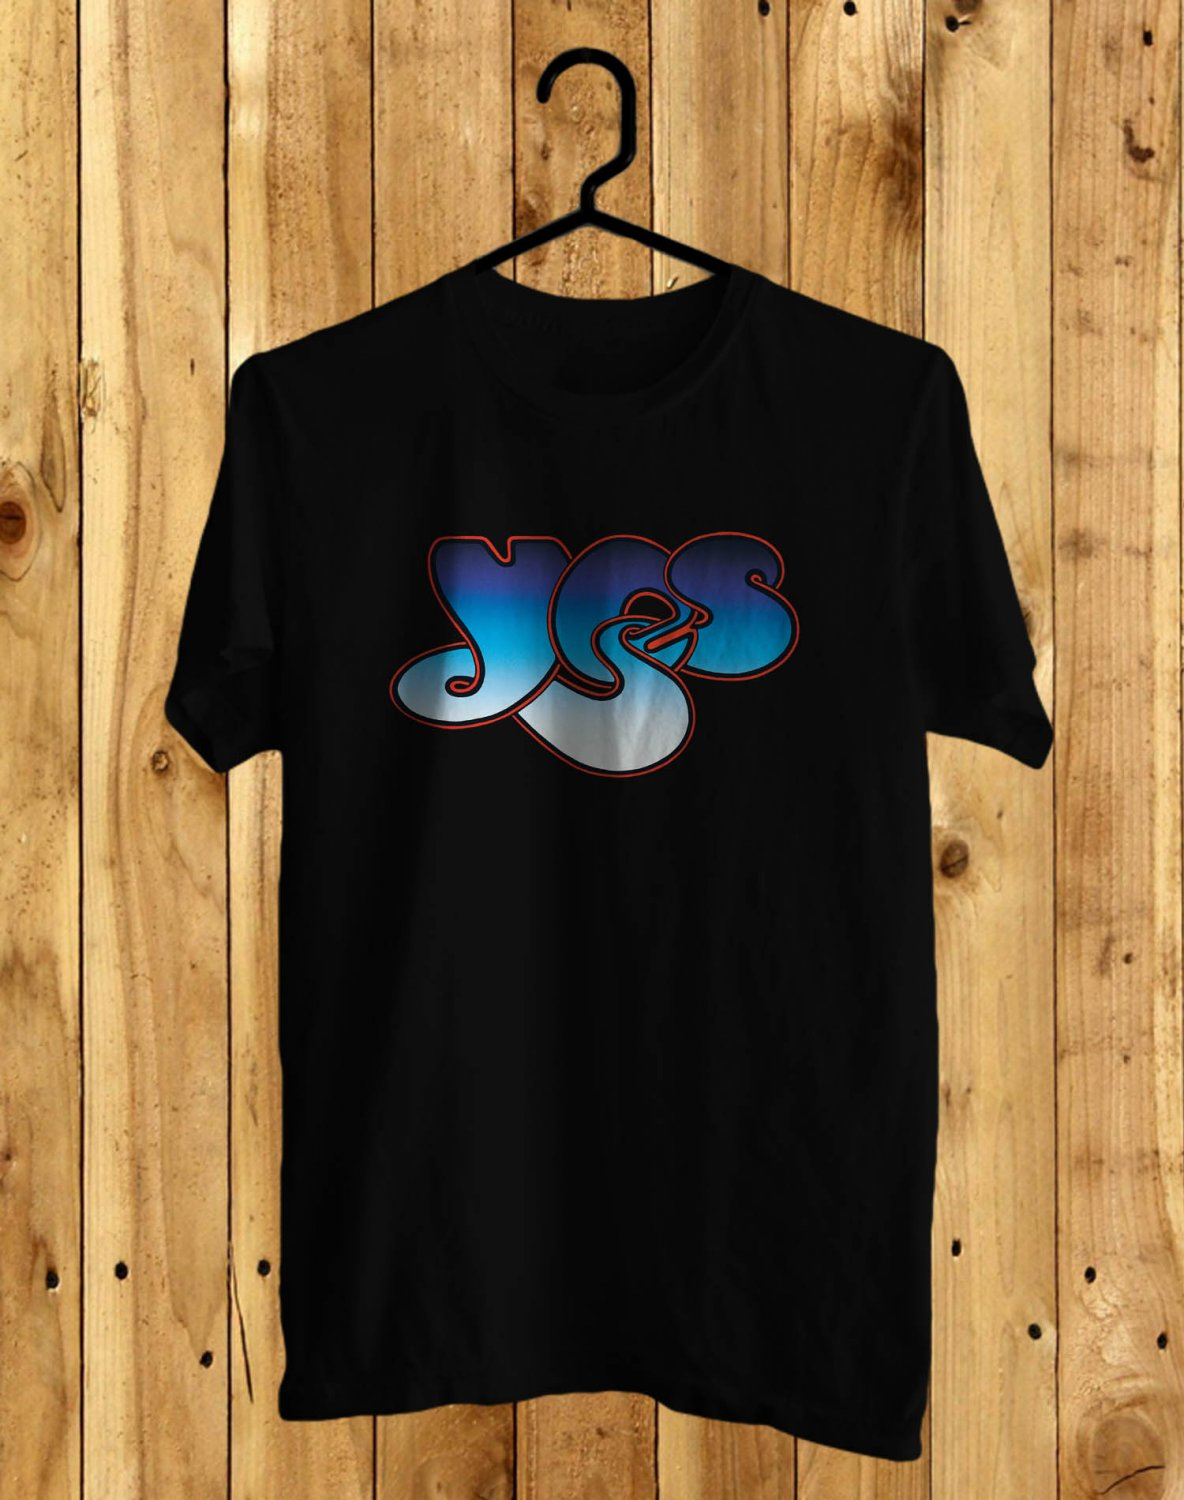 Yes Yestival 2017 Black Tee's Front Side by Complexart z1